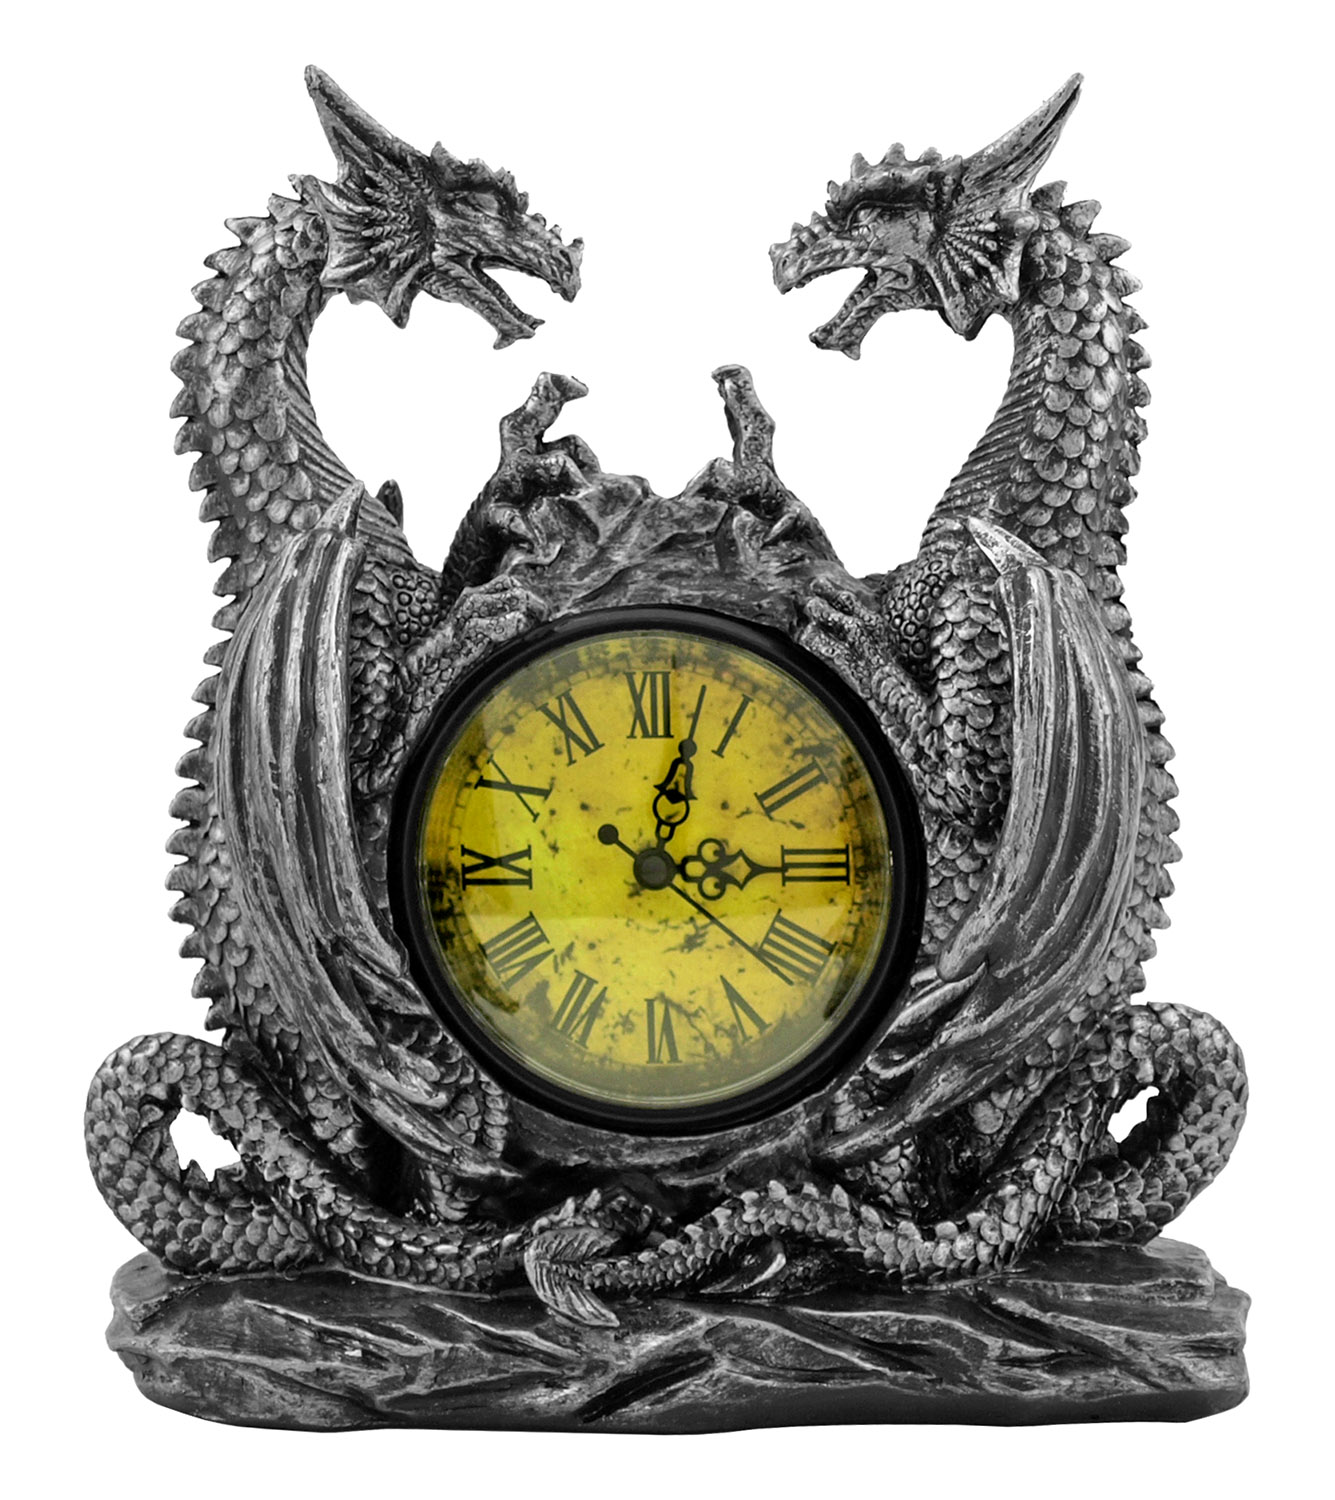 11 in Dragonstar Clock with Dual Dragon Figurines - DWK